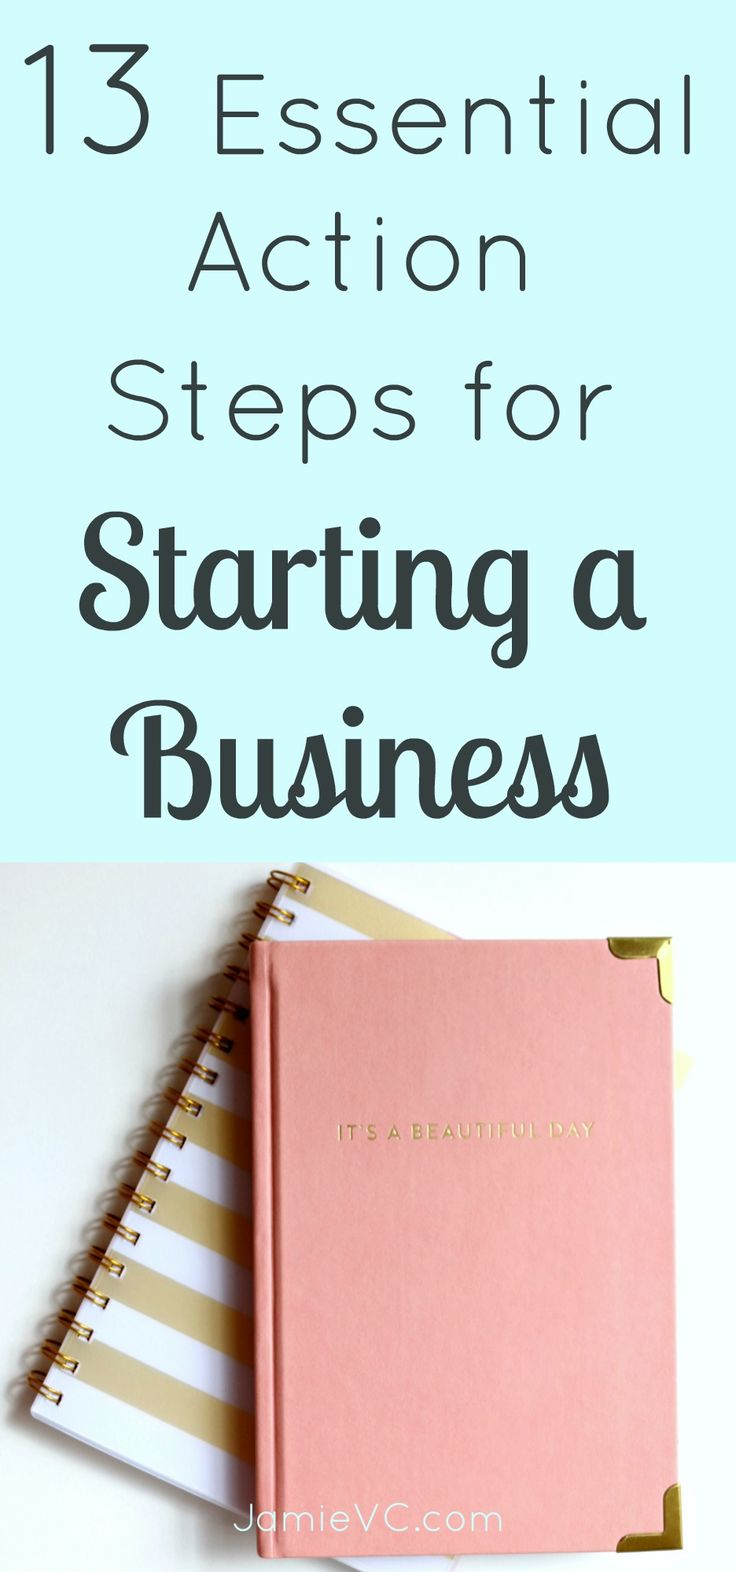 13 essential action steps for starting a business.   If you're starting a business, you need to do it right. Know what action items you must do and start your business on the path for success.  A free guide for all entrepreneurs and business owners